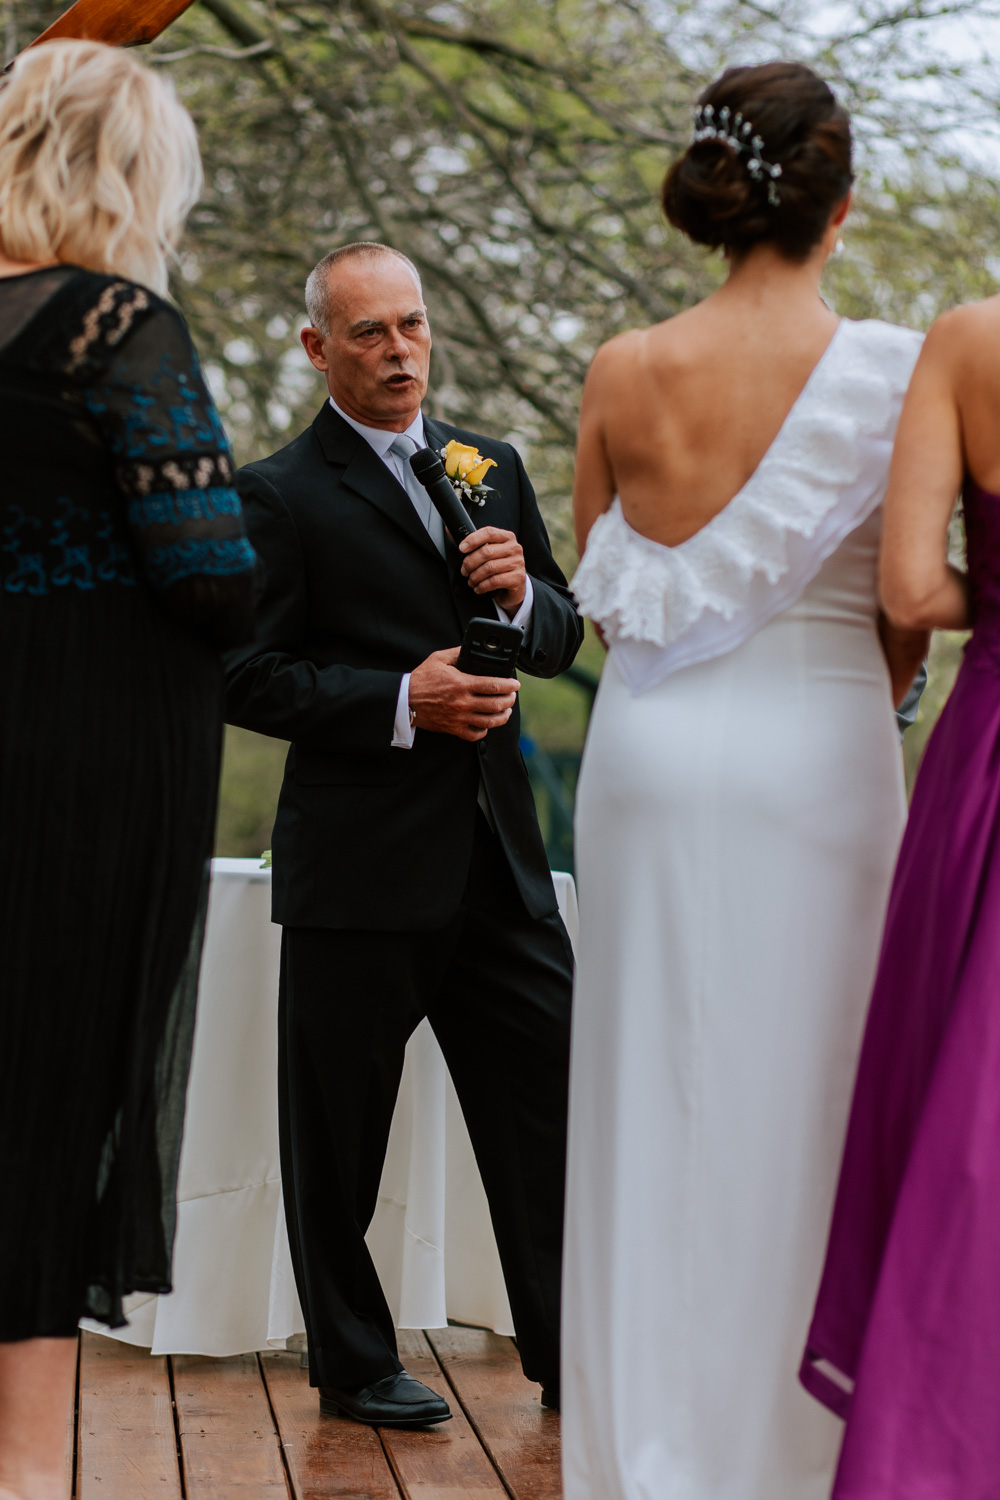 Shutter Up Studios   Wedding photographer in Pittsburgh, Pennsylvania   Outdoor elegant ceremony with groom reading vows